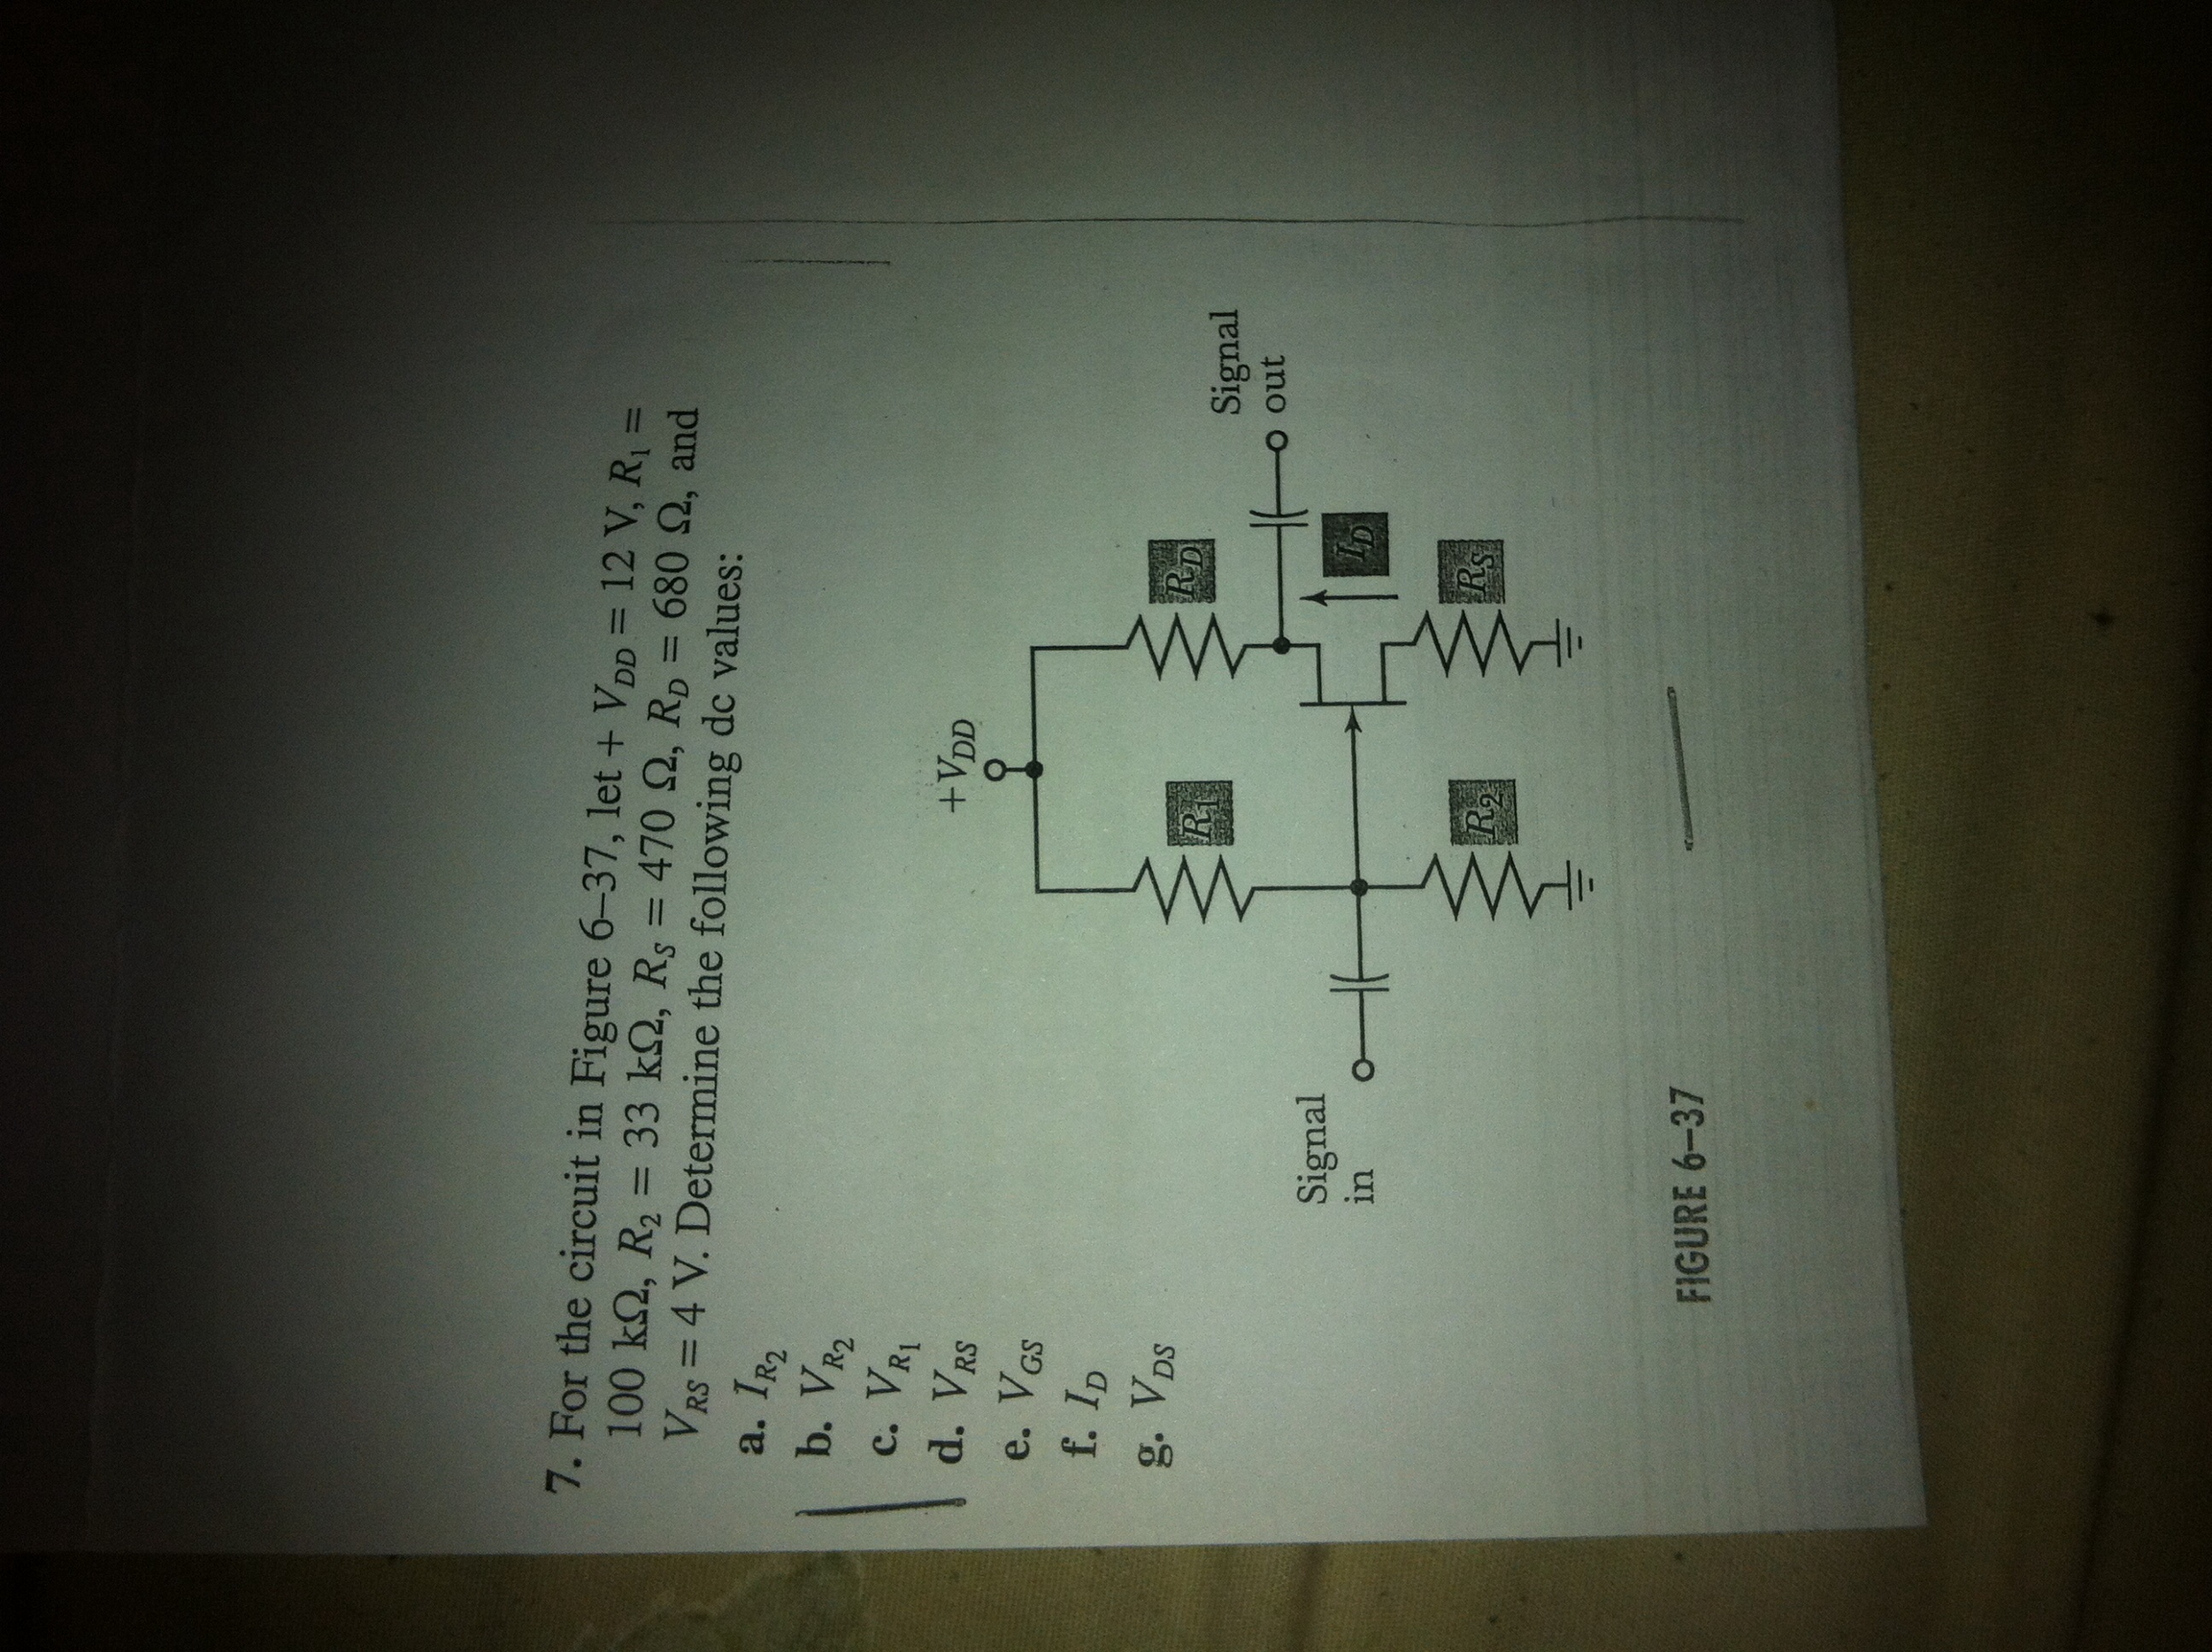 For the circuit in Figure 6-37, let + VDD = 12 V,